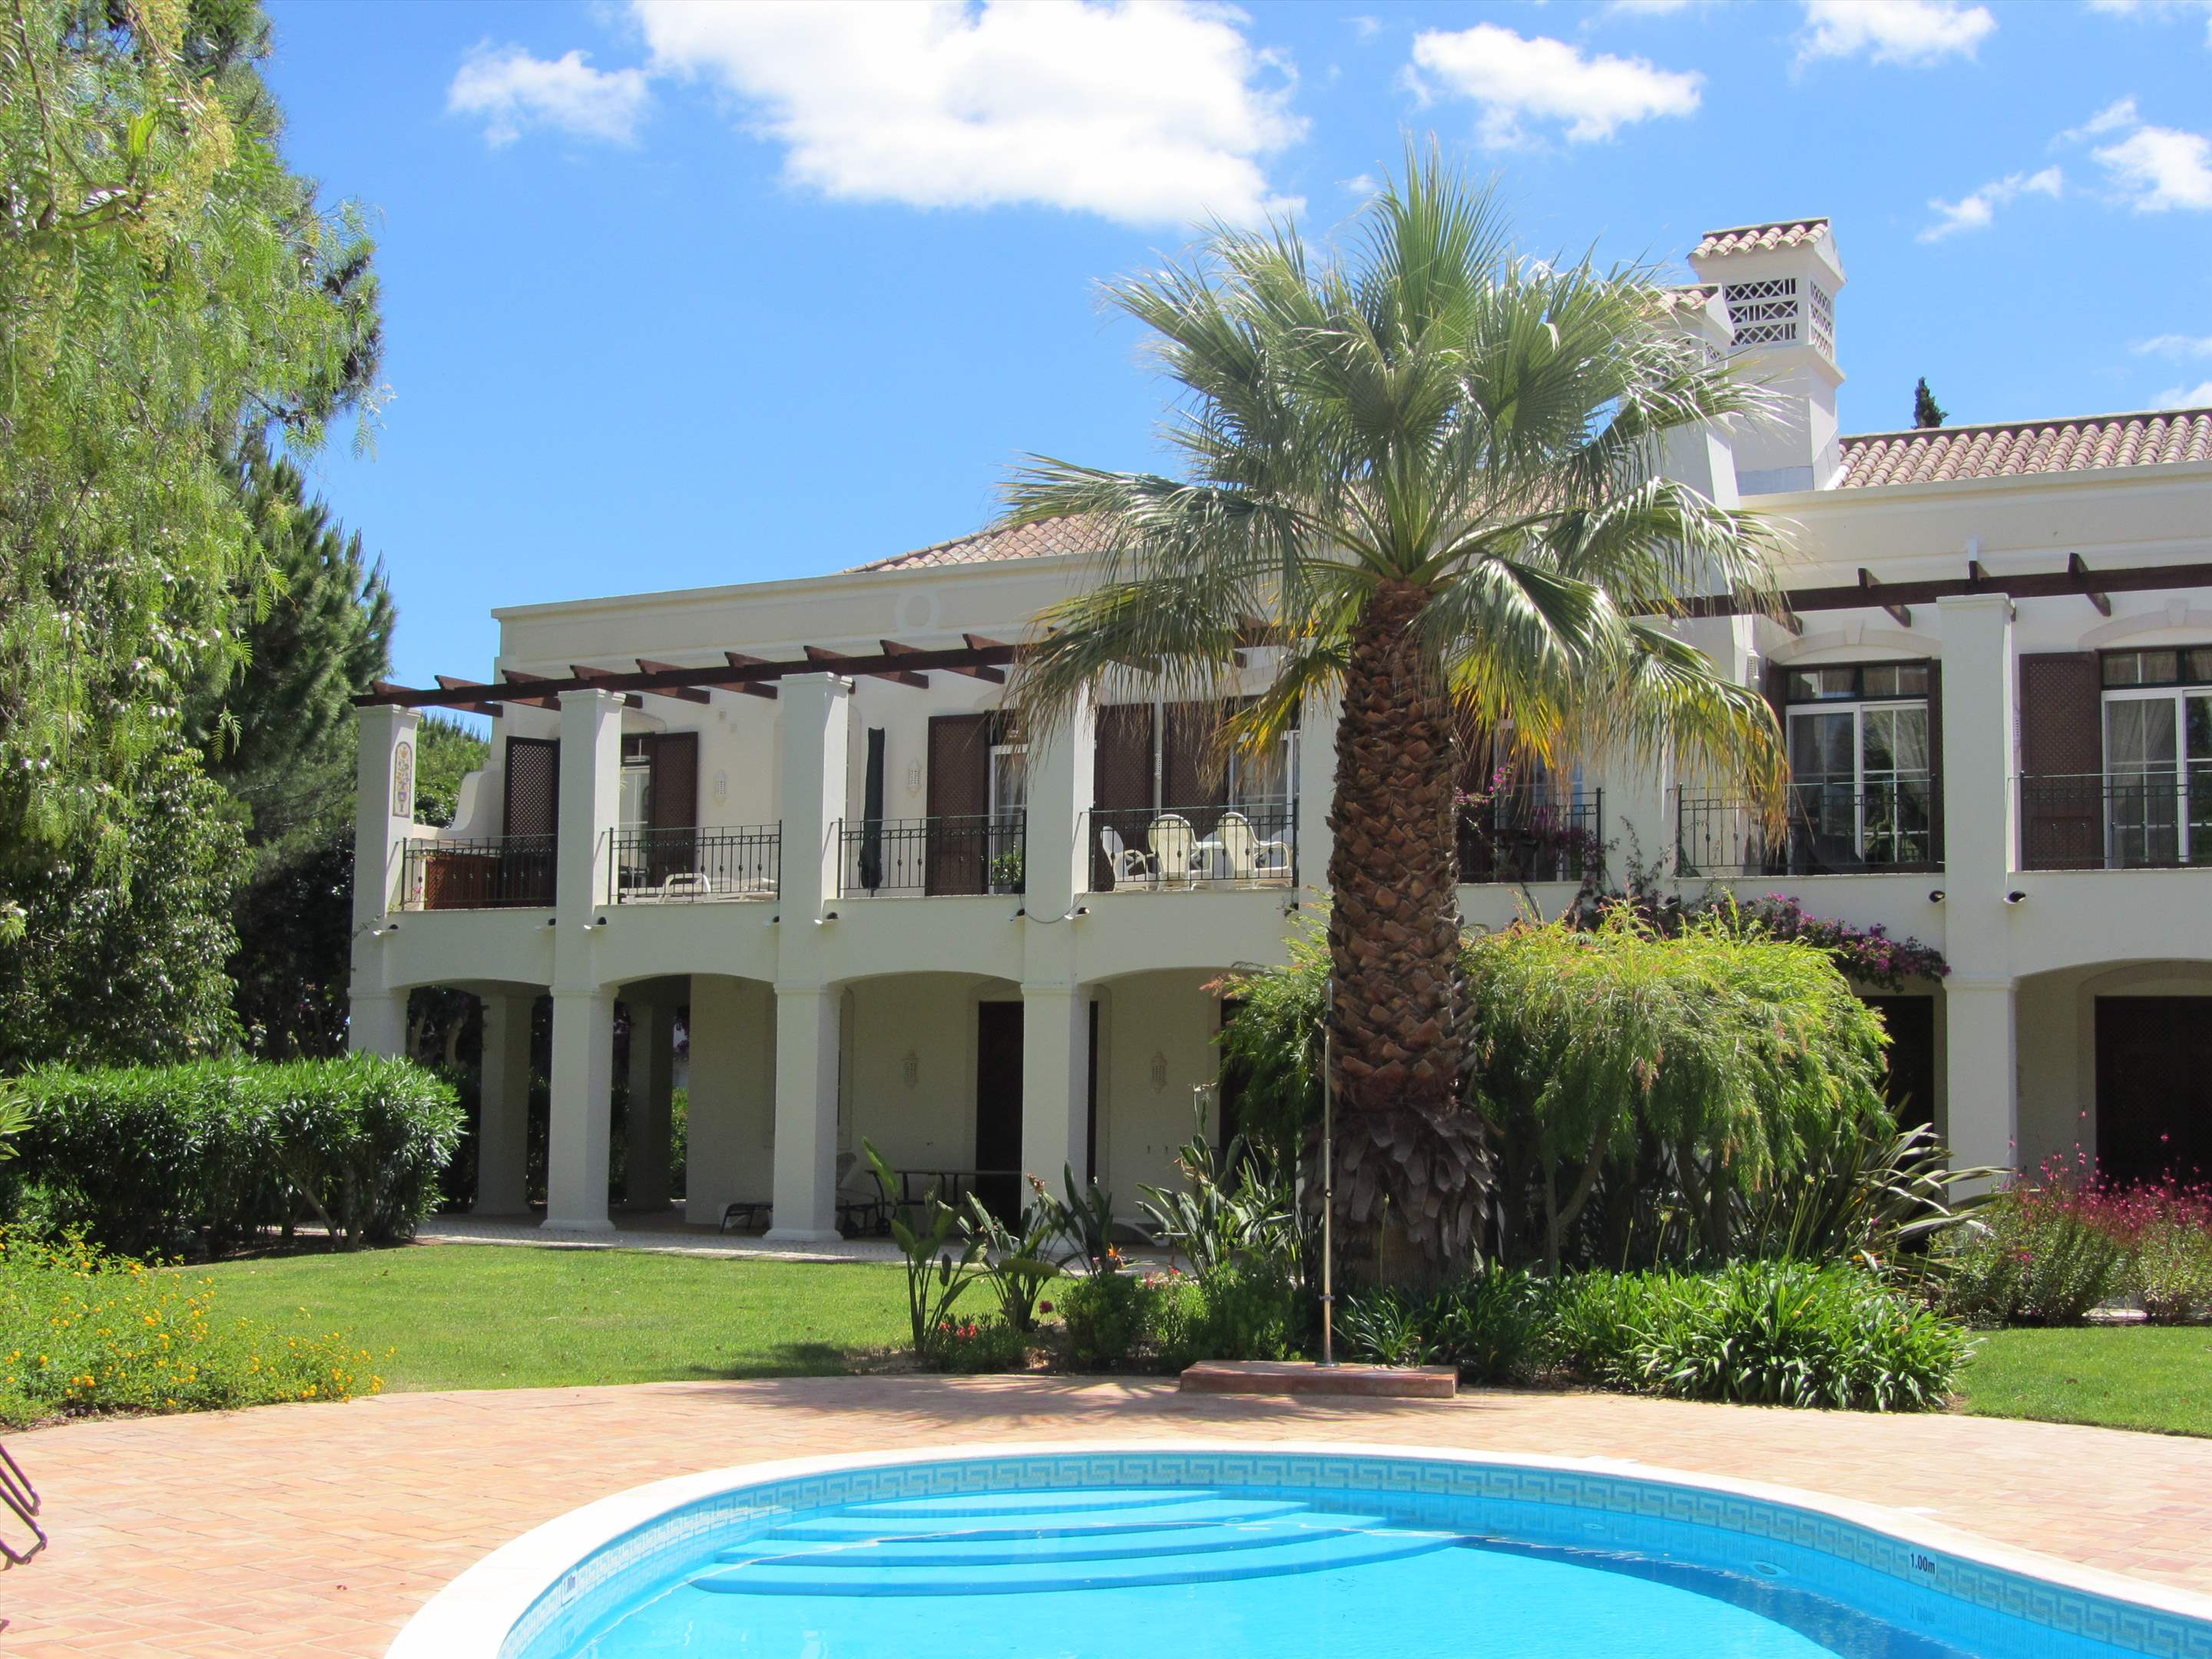 Apartment Dolores, 2 bedroom apartment in Quinta do Lago, Algarve Photo #1